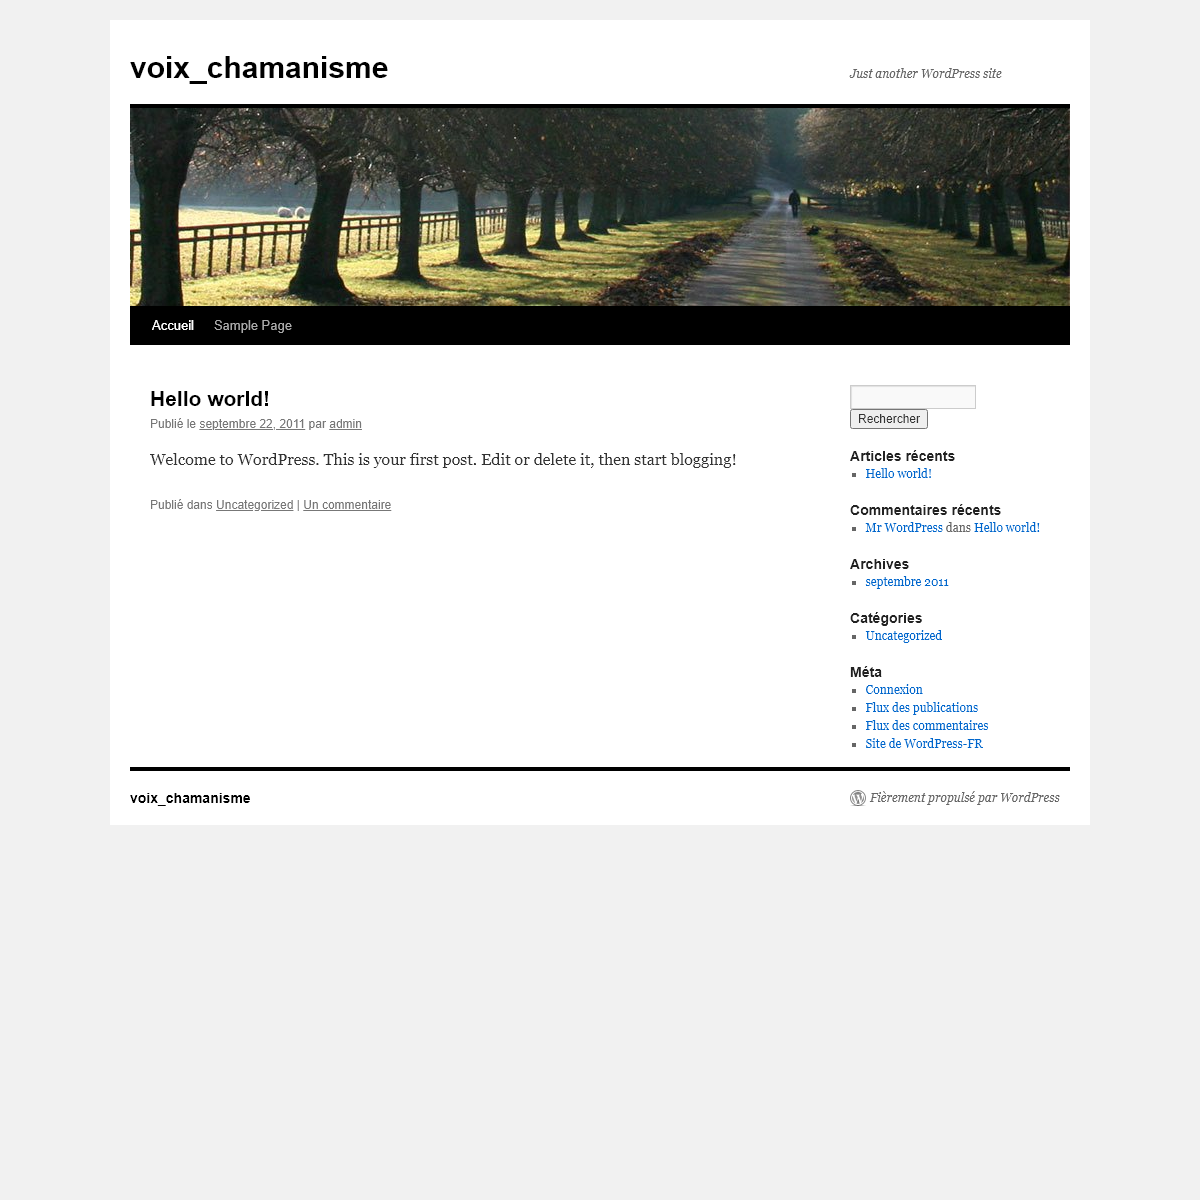 voix_chamanisme - Just another WordPress site